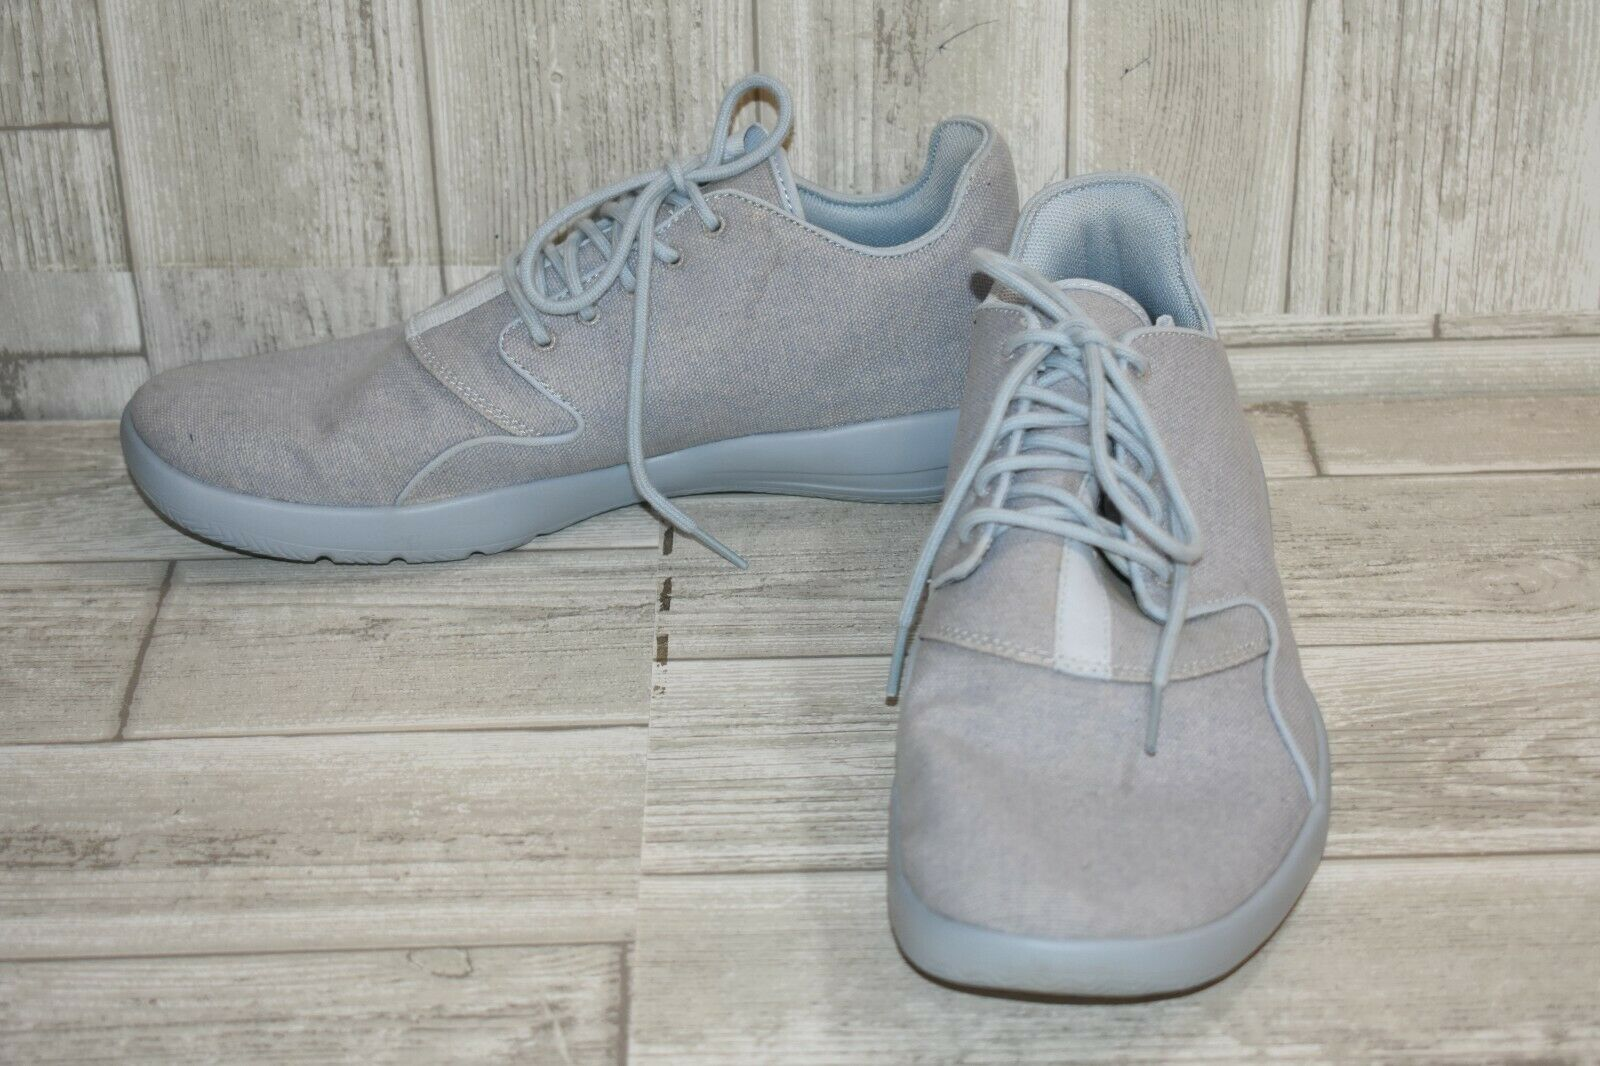 Nike Air Jordan Eclipse Court shoes - Men's Size 10.5 - bluee